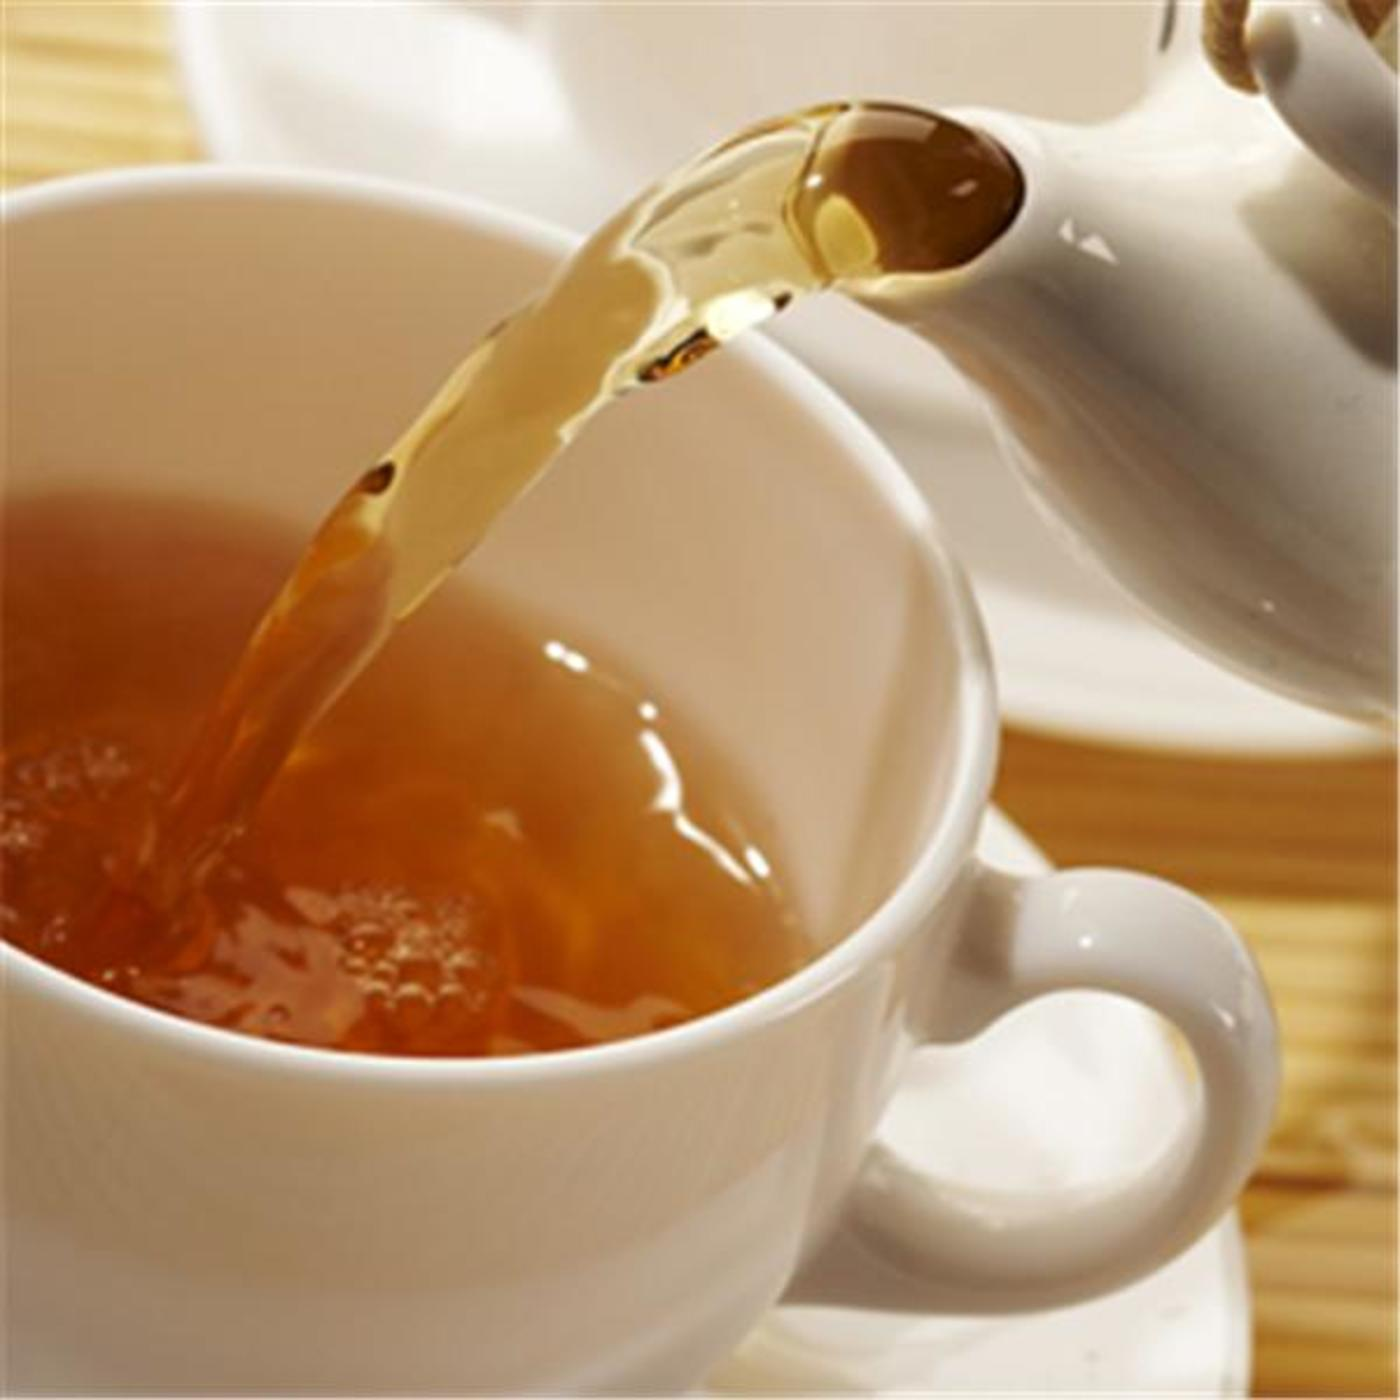 TeaCast - Tea beverage, culture, health, and business